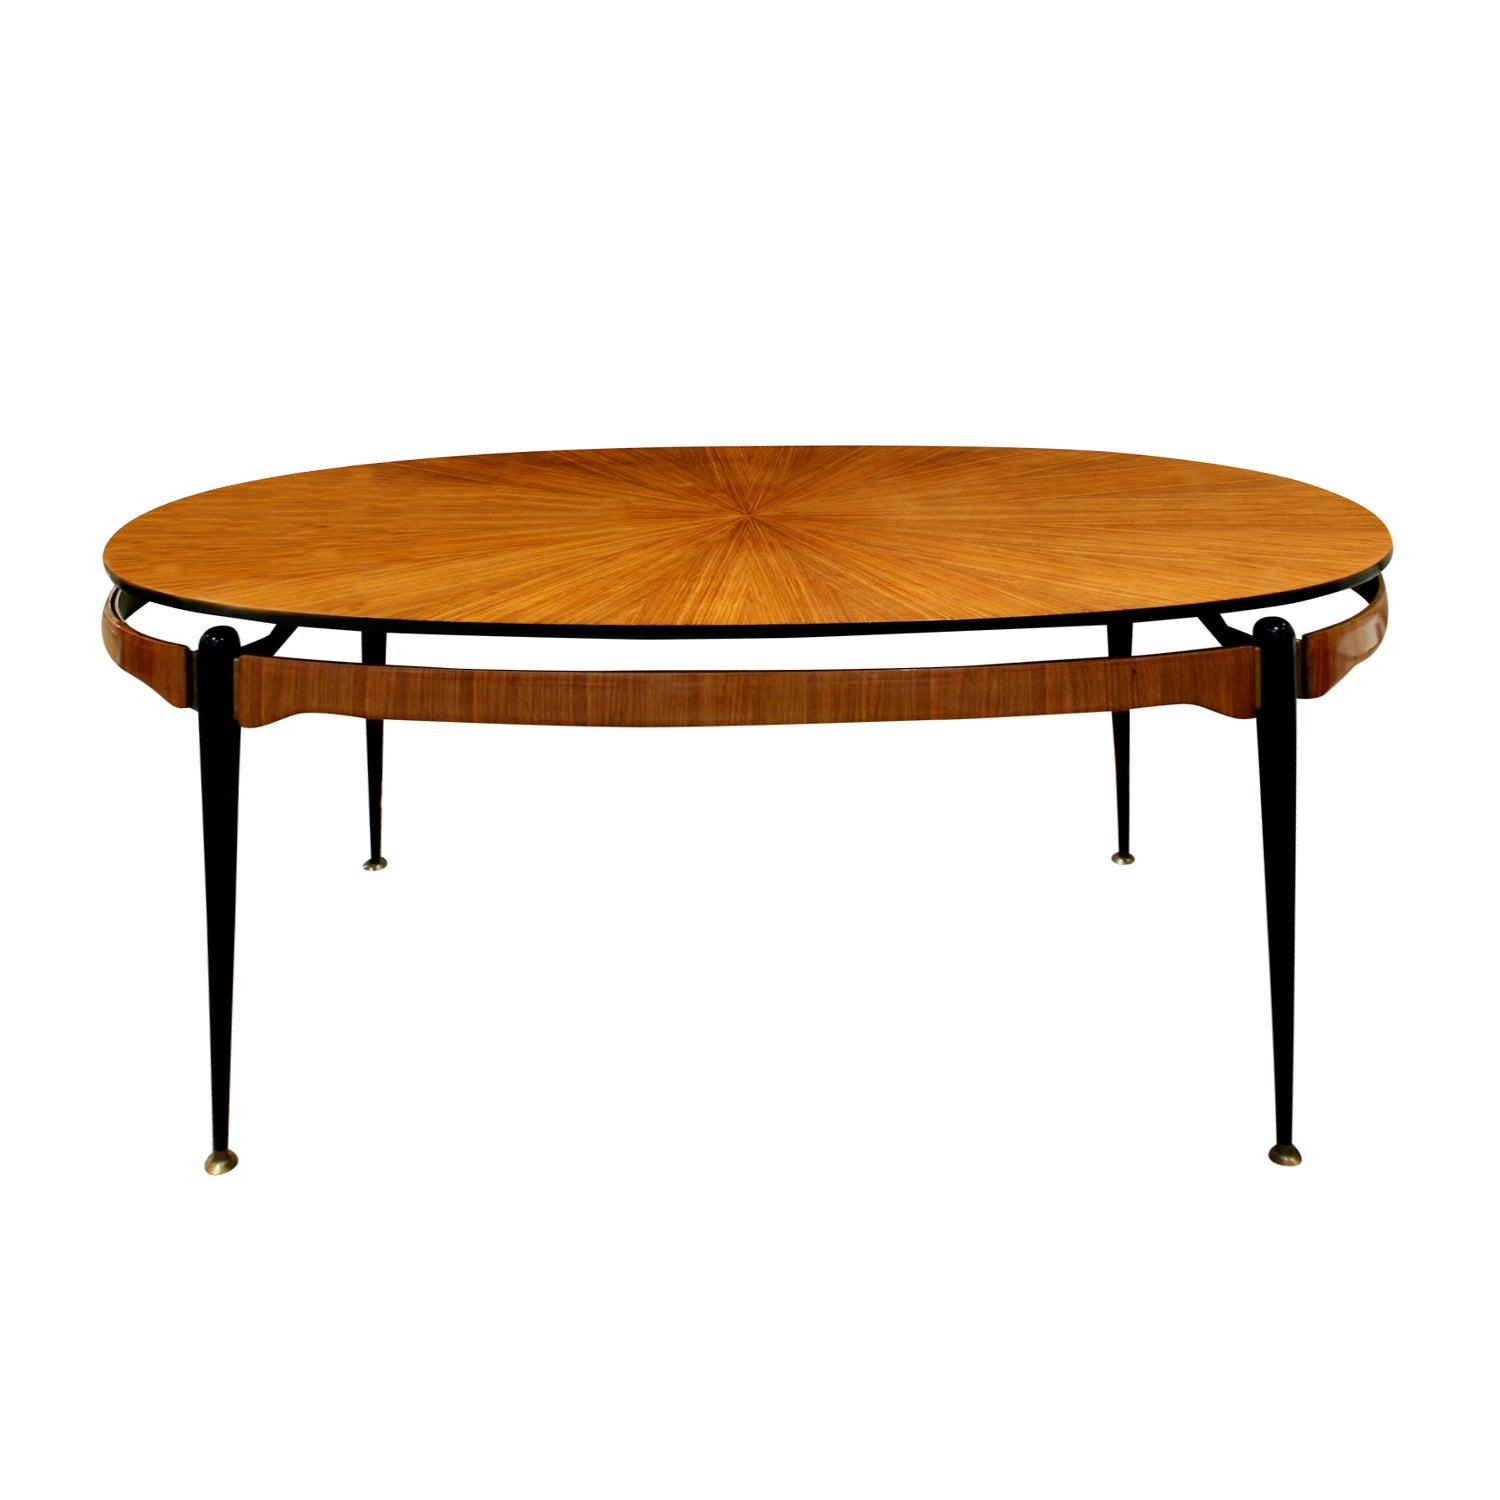 Beautiful Radiating Rosewood Dining Table, attributed to Ico Parisi, circa 1954